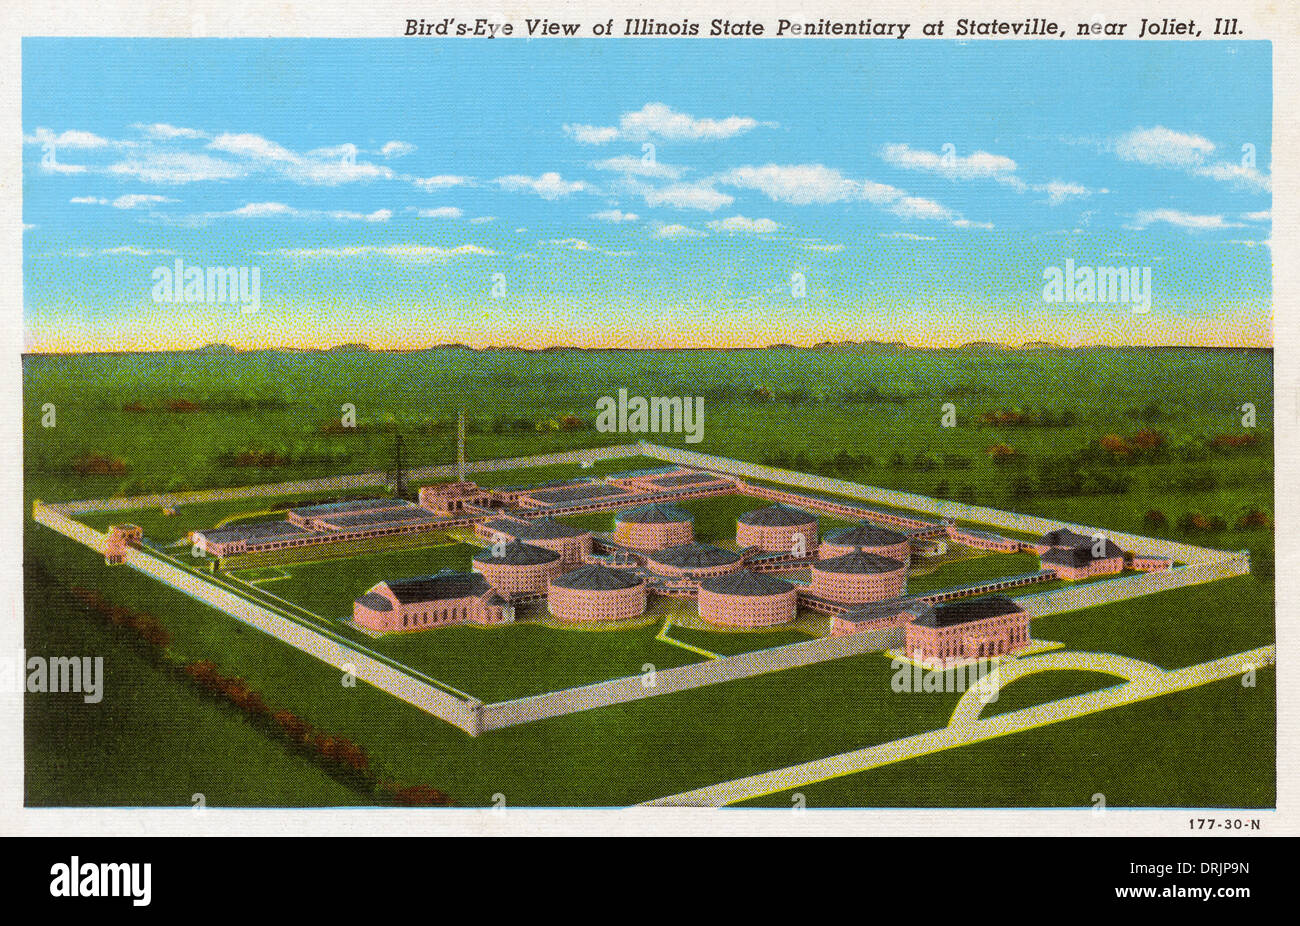 Exterior view of the Illinois State Penitentiary - Stock Image